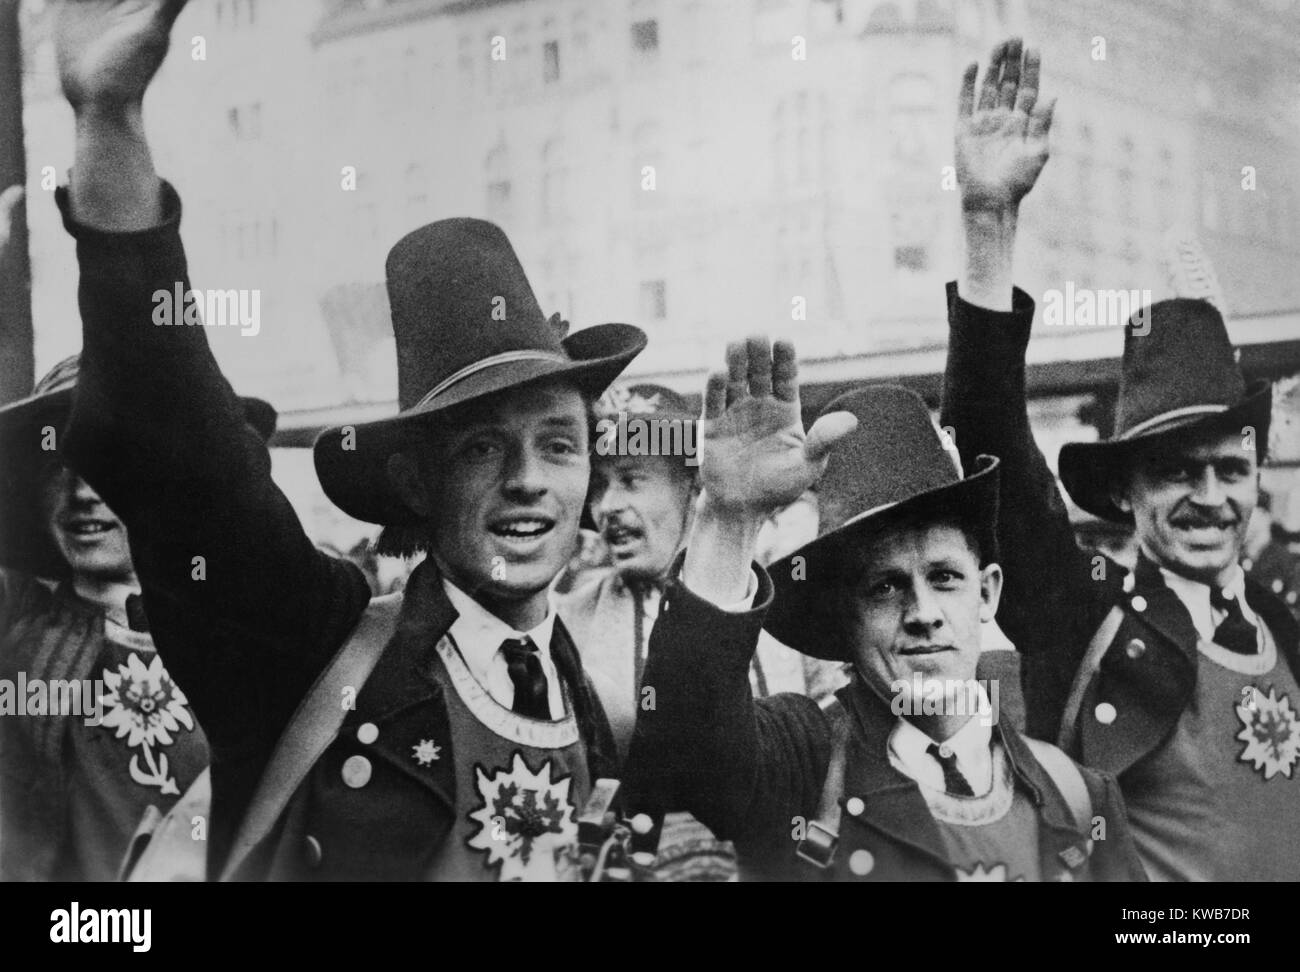 Men in Tyrolean costume celebrate the German annexation of Austria with a Nazi salute. Nazi ideology integrated Stock Photo